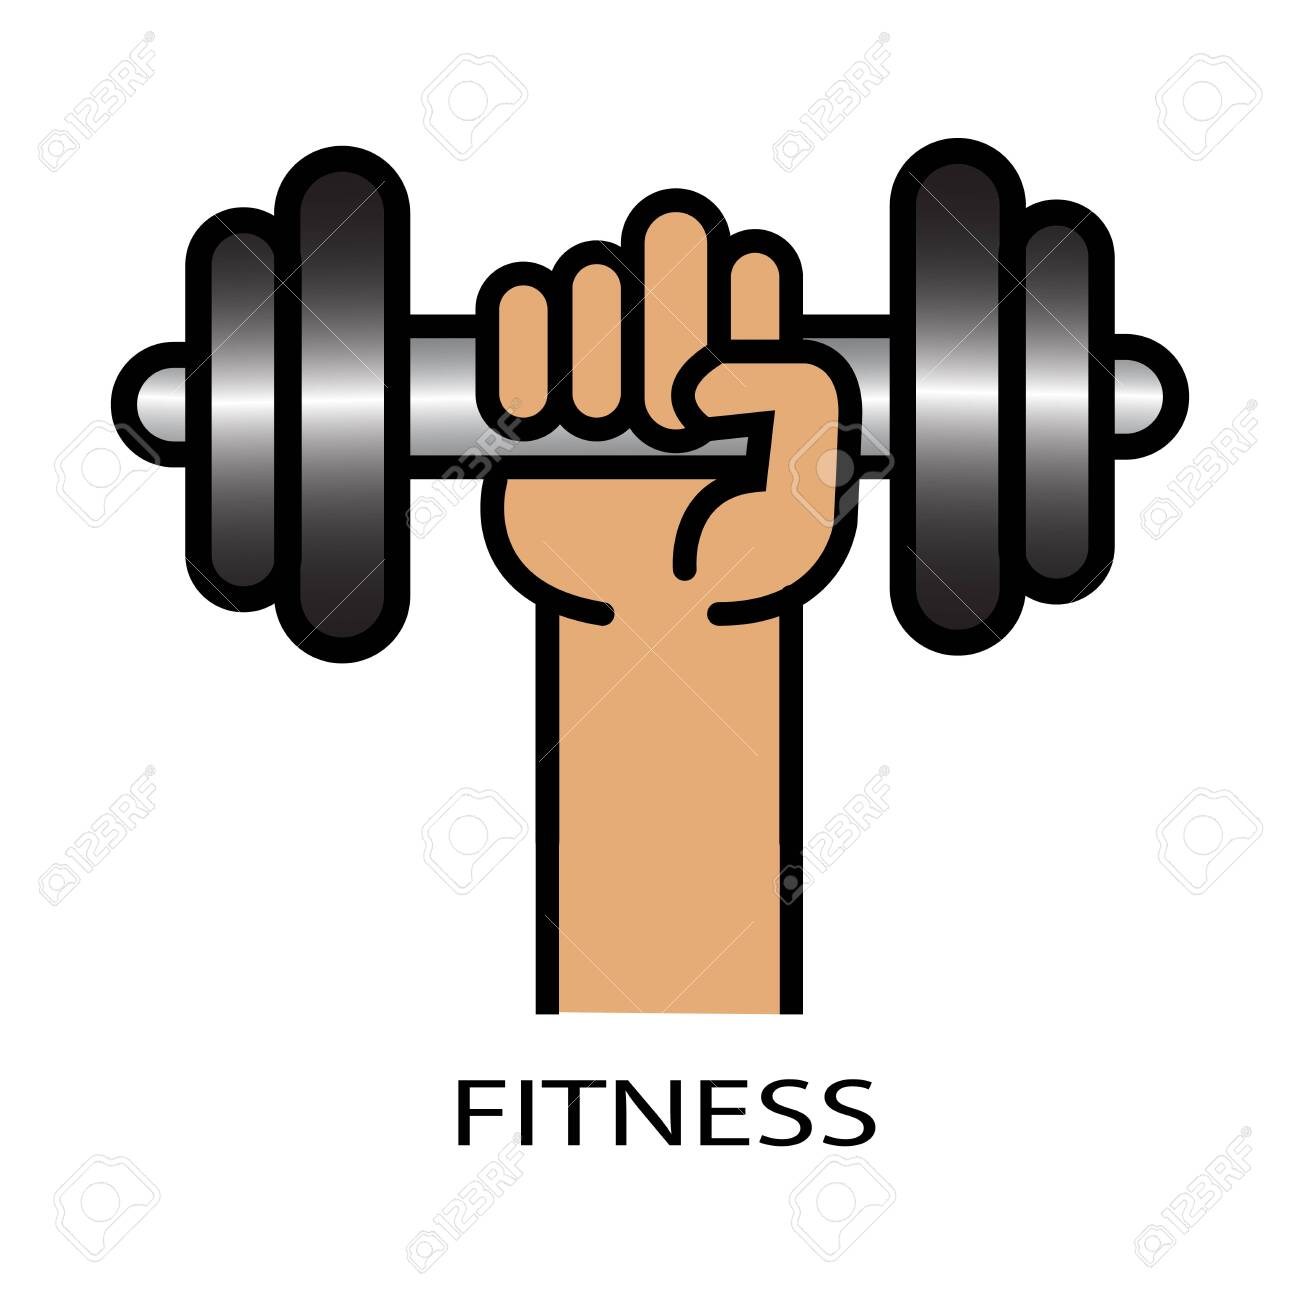 Vector illustration of athletic sportsman arm holding dumbbell with fitness lettering. Fitness workout. - 154940089